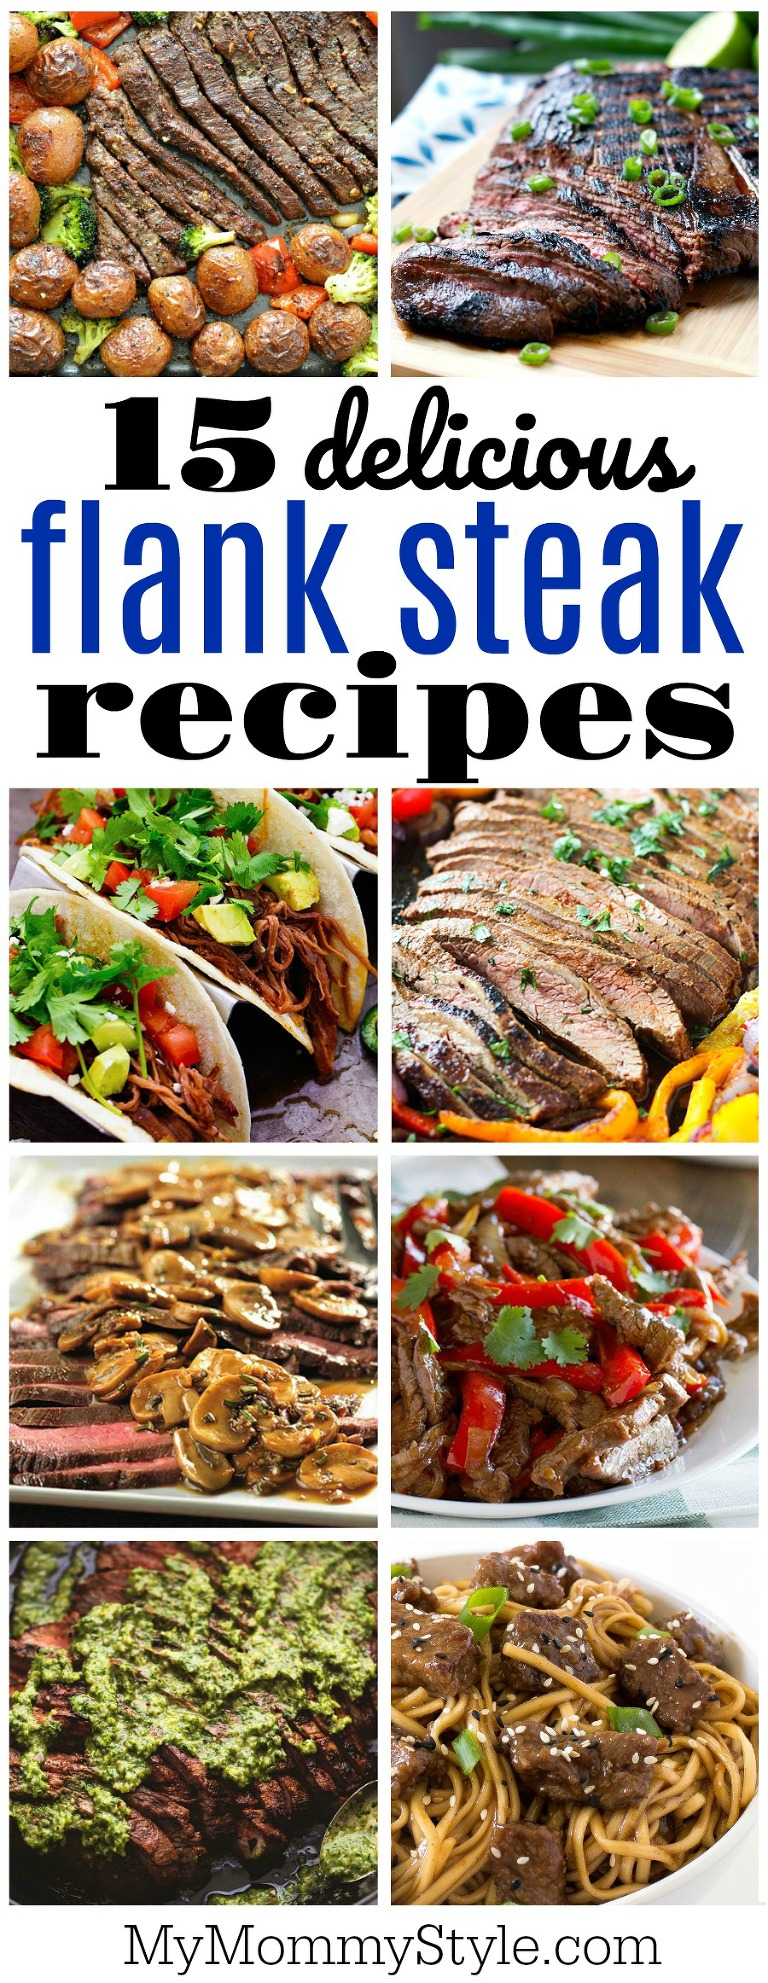 15 delicious flank steak recipes